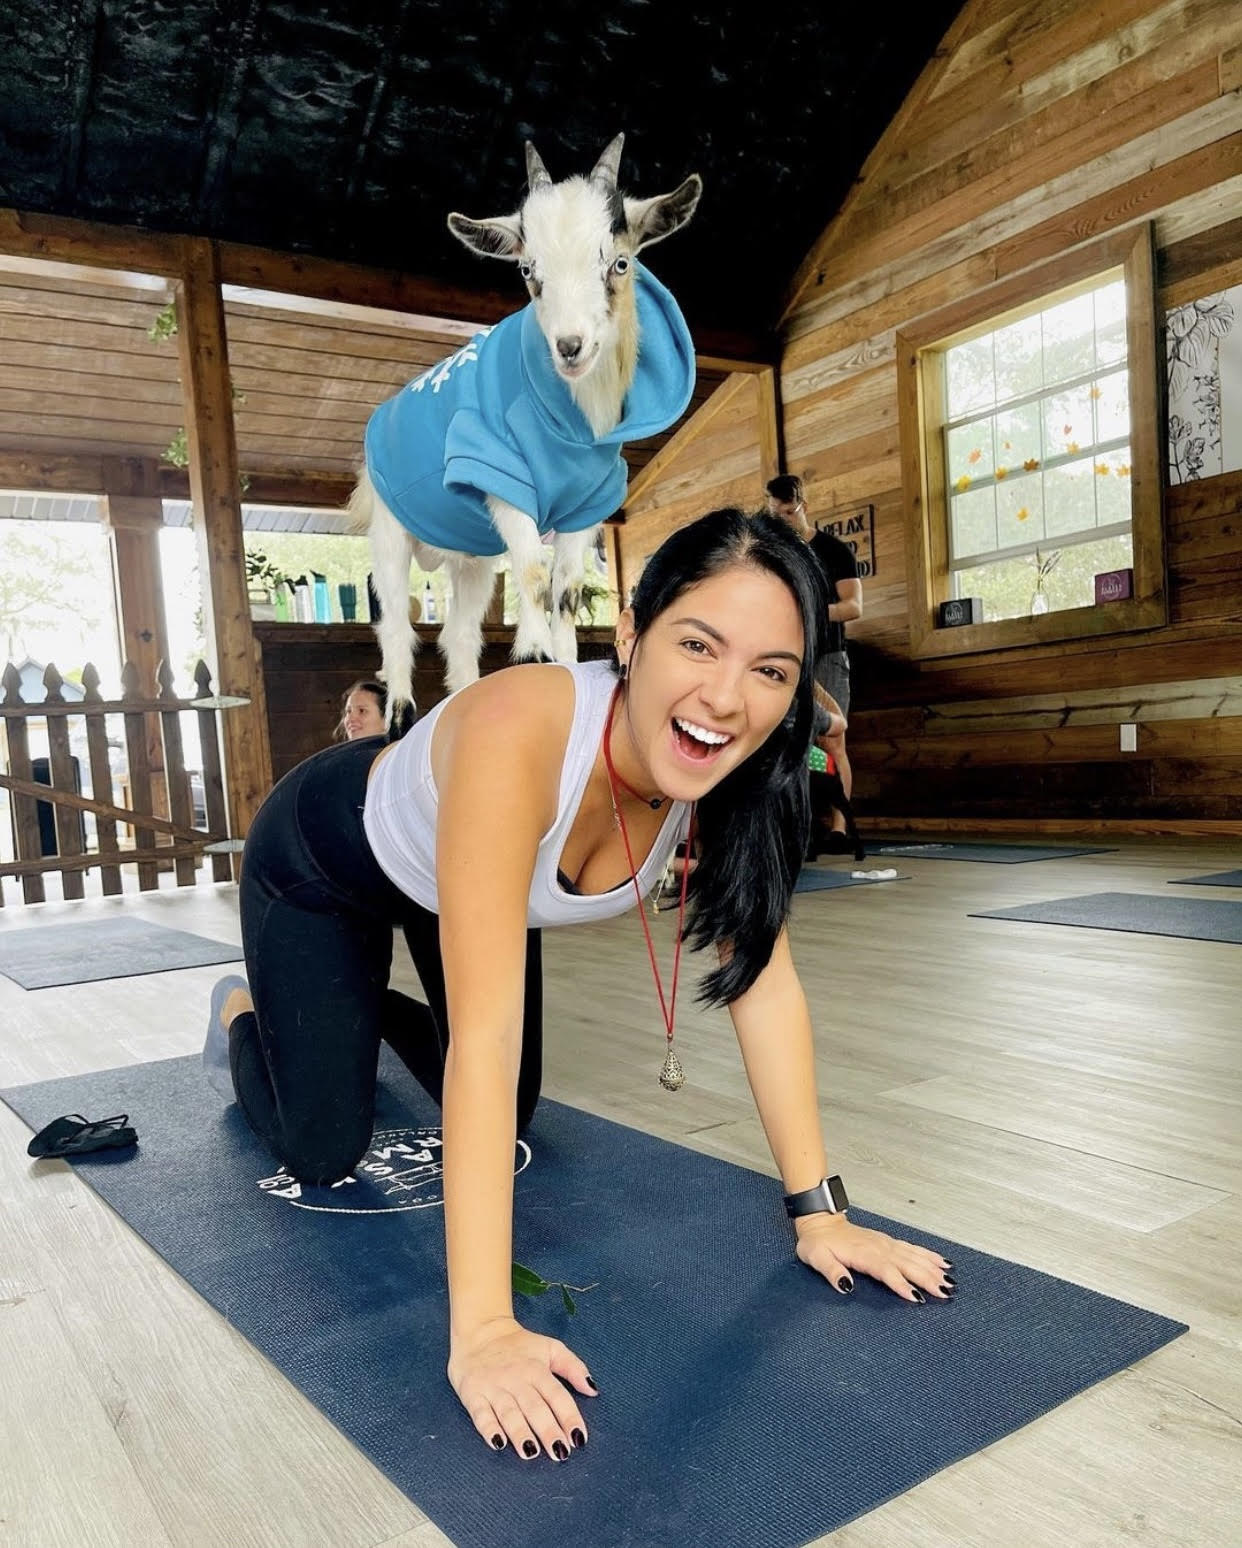 Things to do this weekend in Orlando: image of woman doing yoga with a mini goat at Alaska Farms